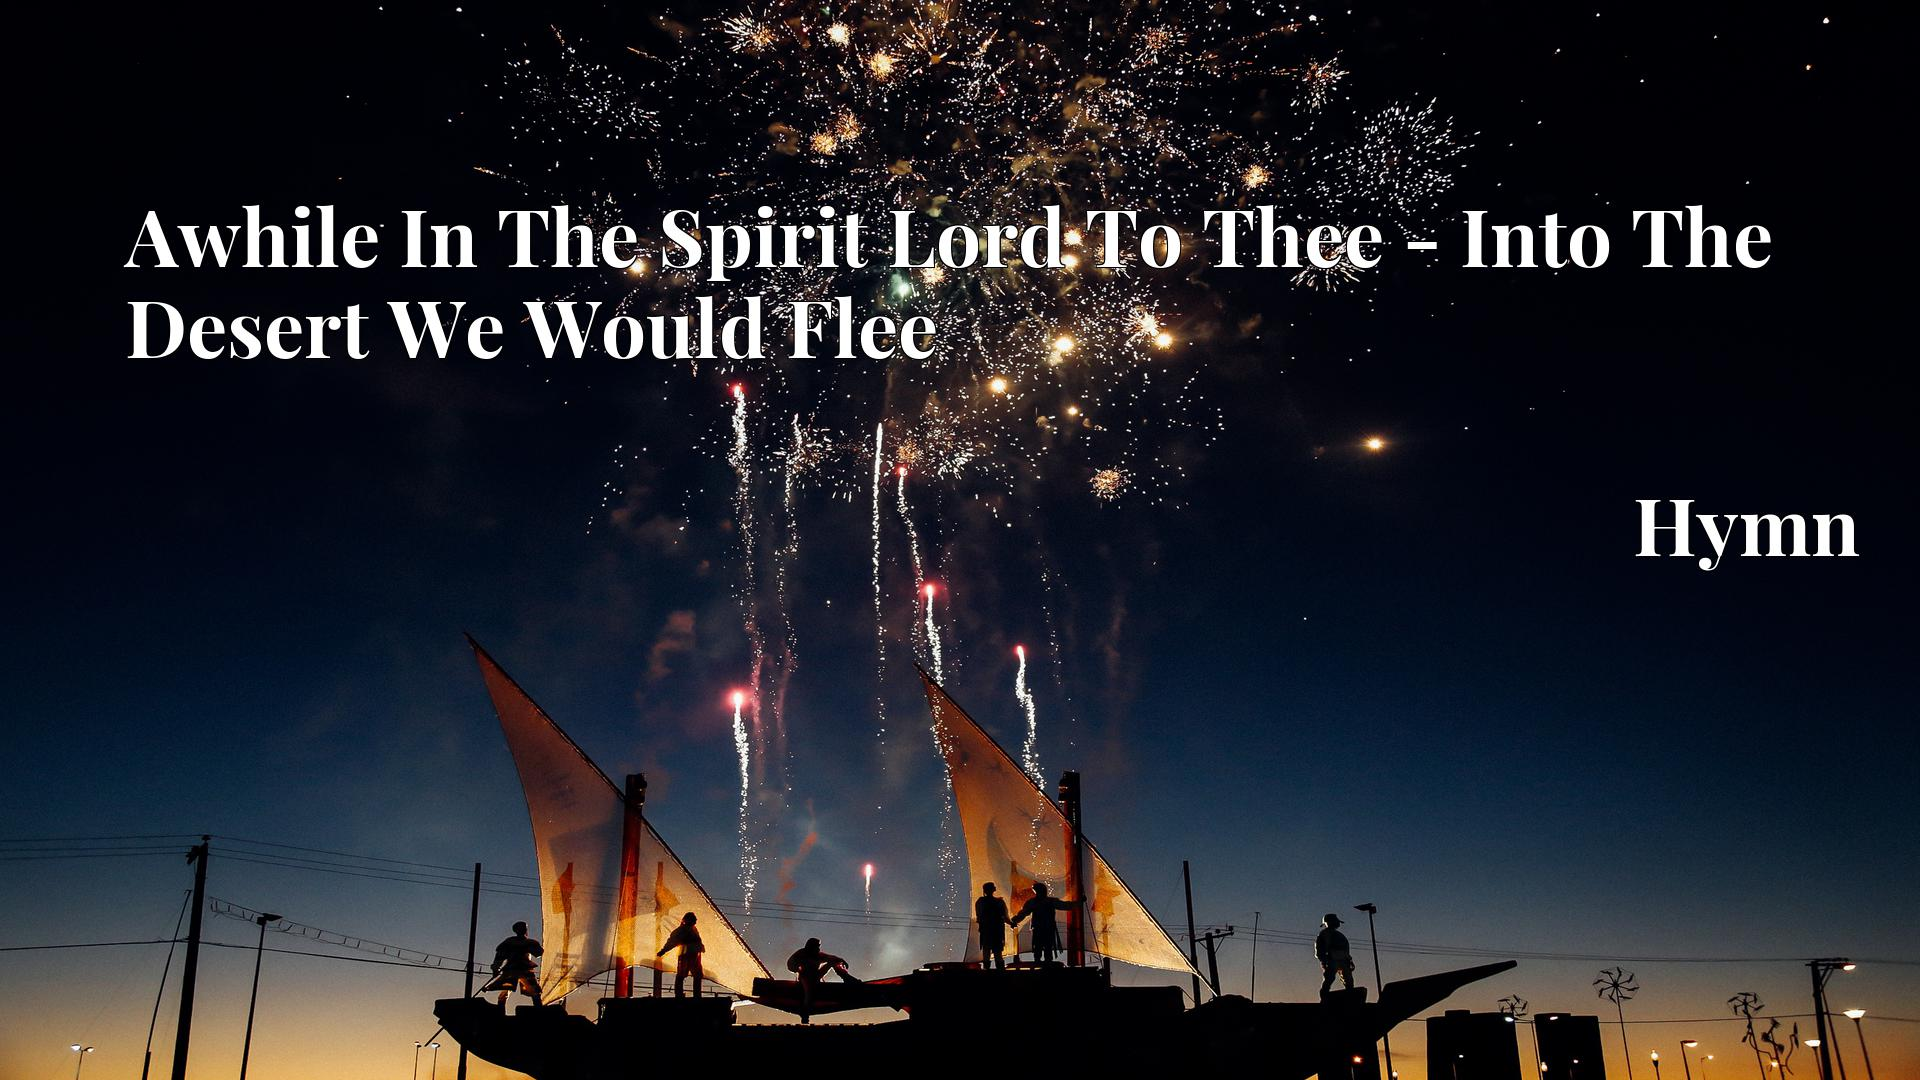 Awhile In The Spirit Lord To Thee - Into The Desert We Would Flee - Hymn